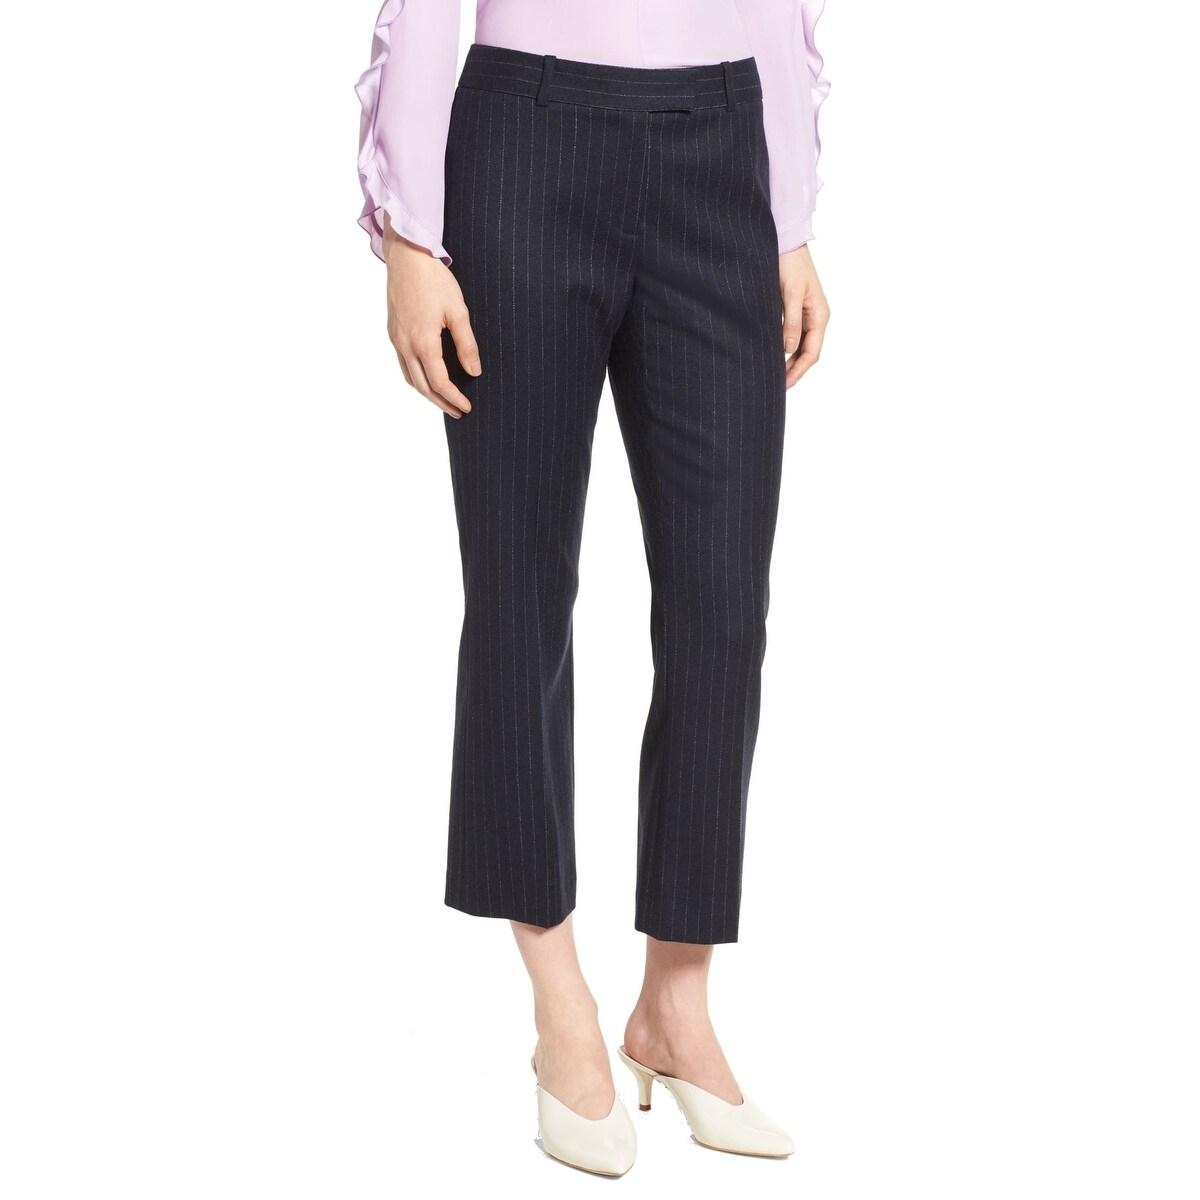 Navy And White Striped Dress Pants